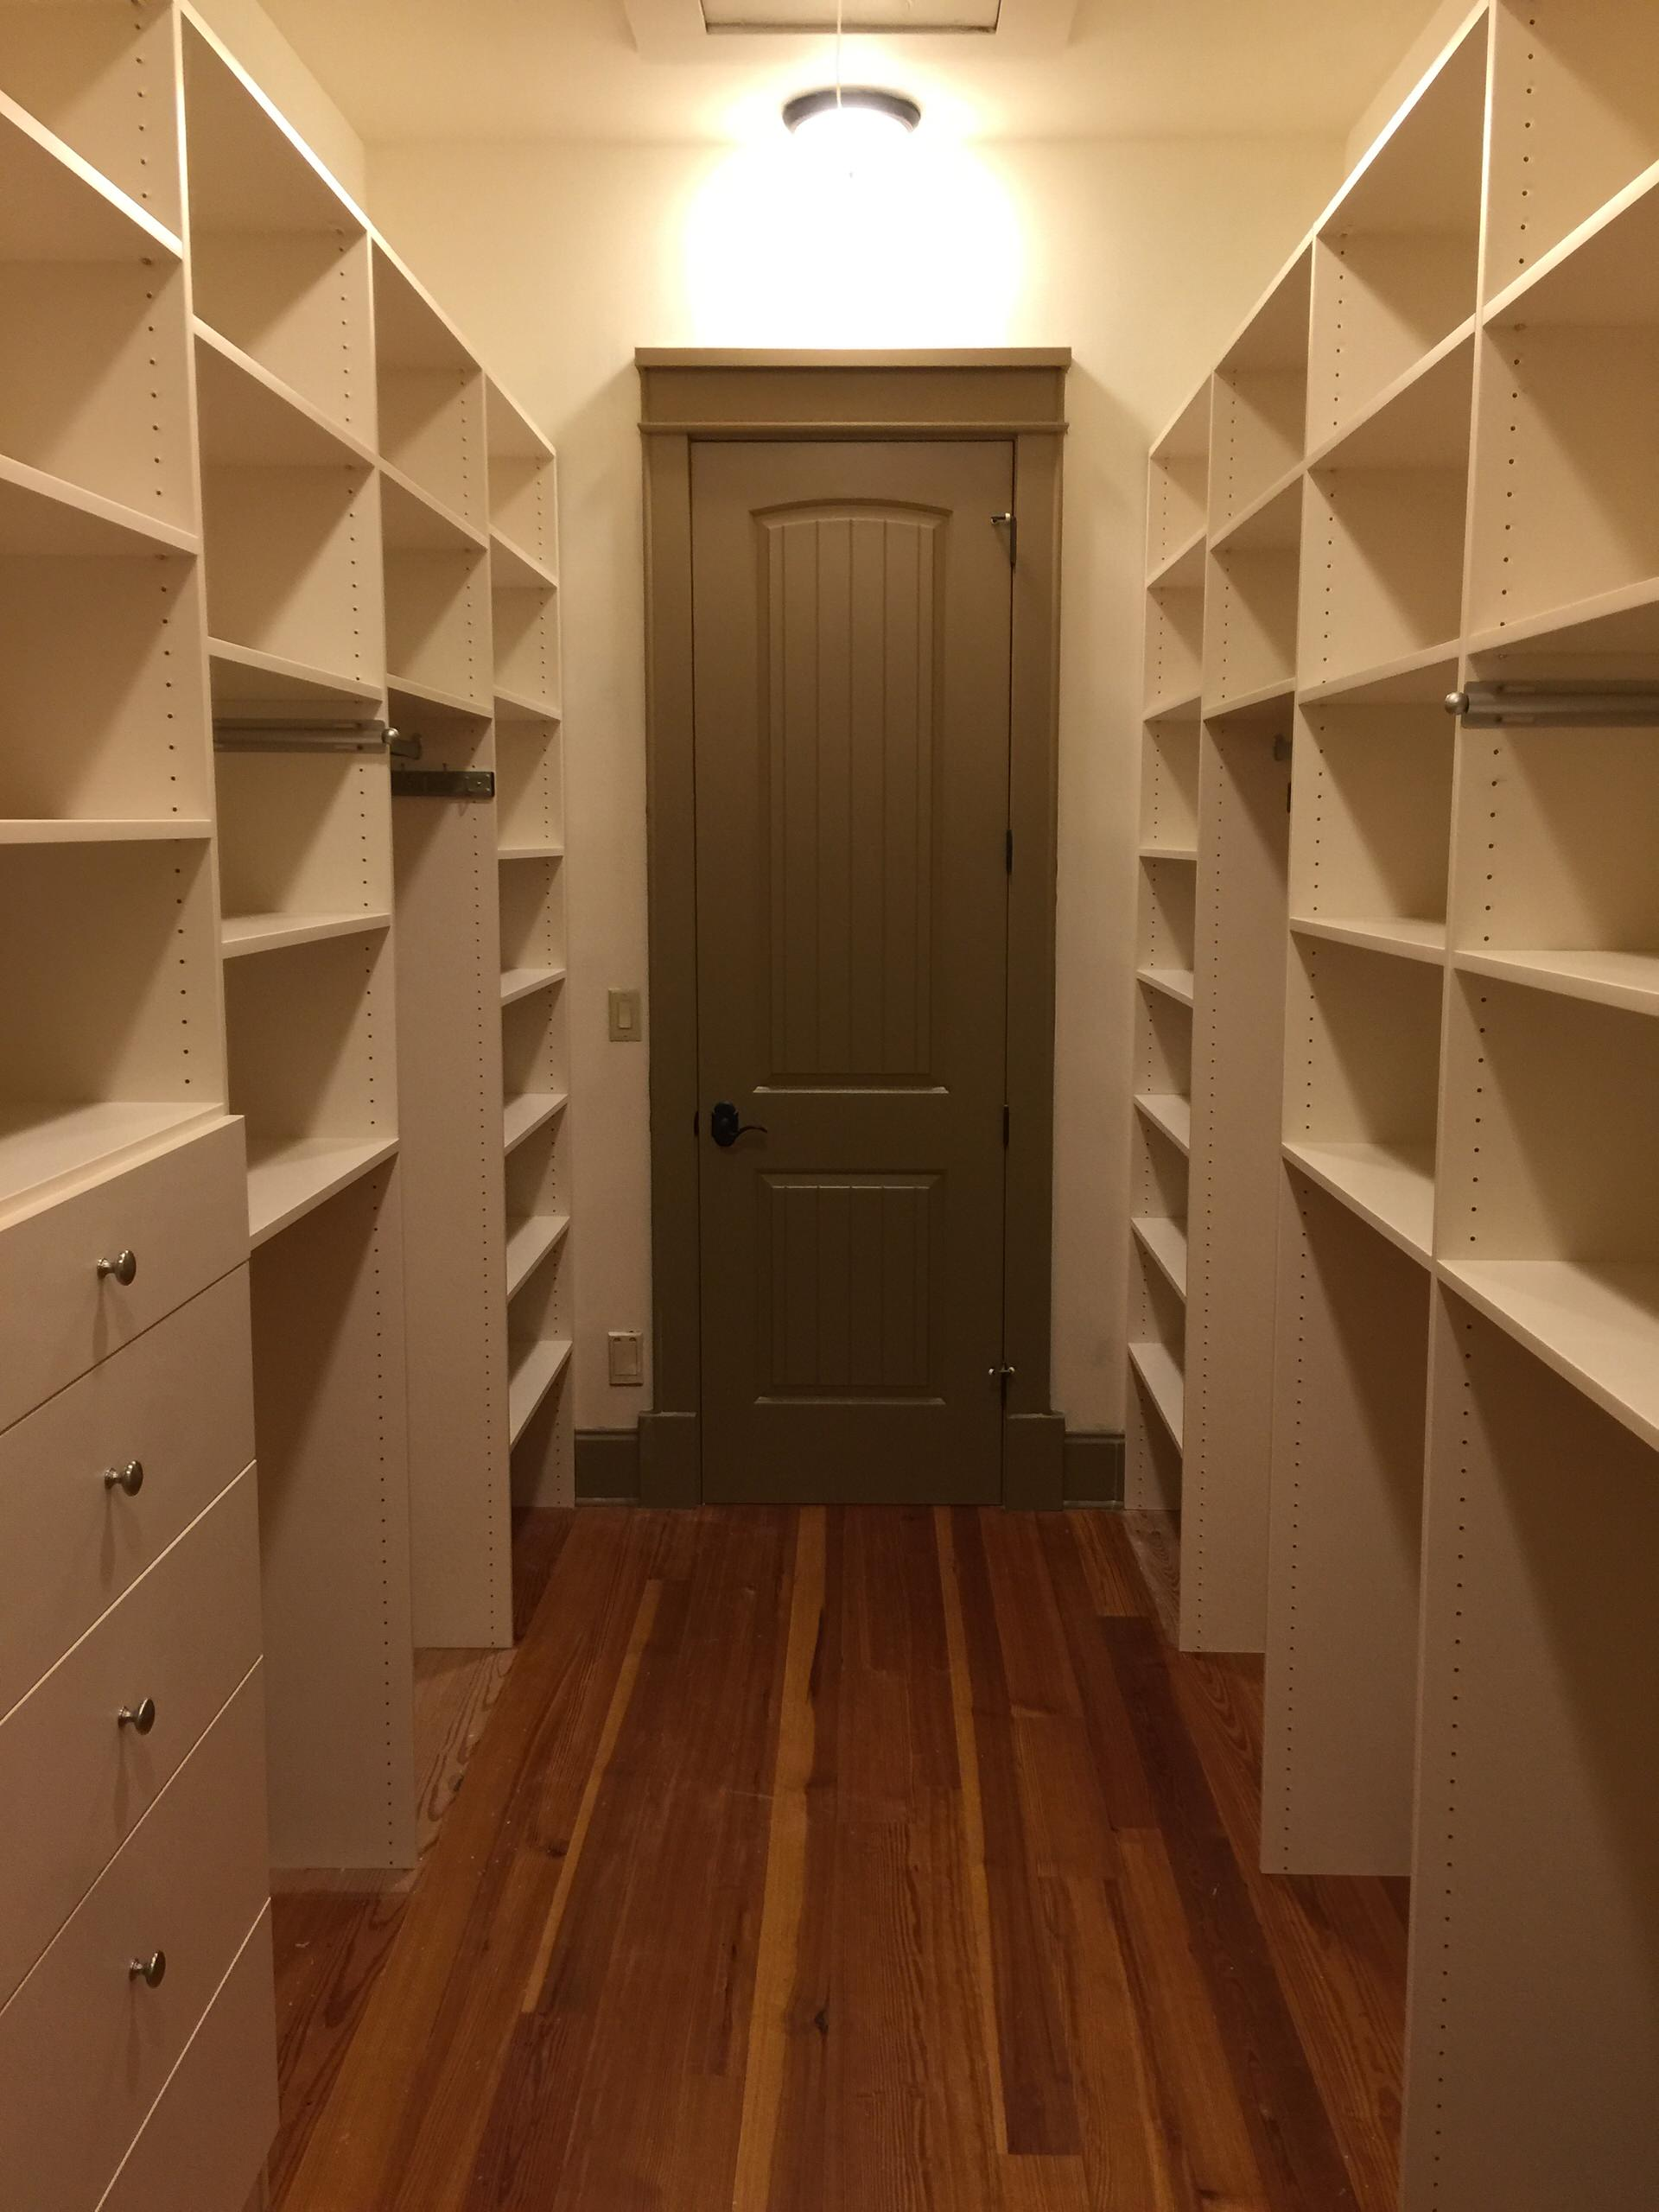 Large and beautiful spaces can make a most useful custom closets! There are adjustable shelves, single and double hanging rods, drawers and a tilt out hamper. This was installed in just one day!